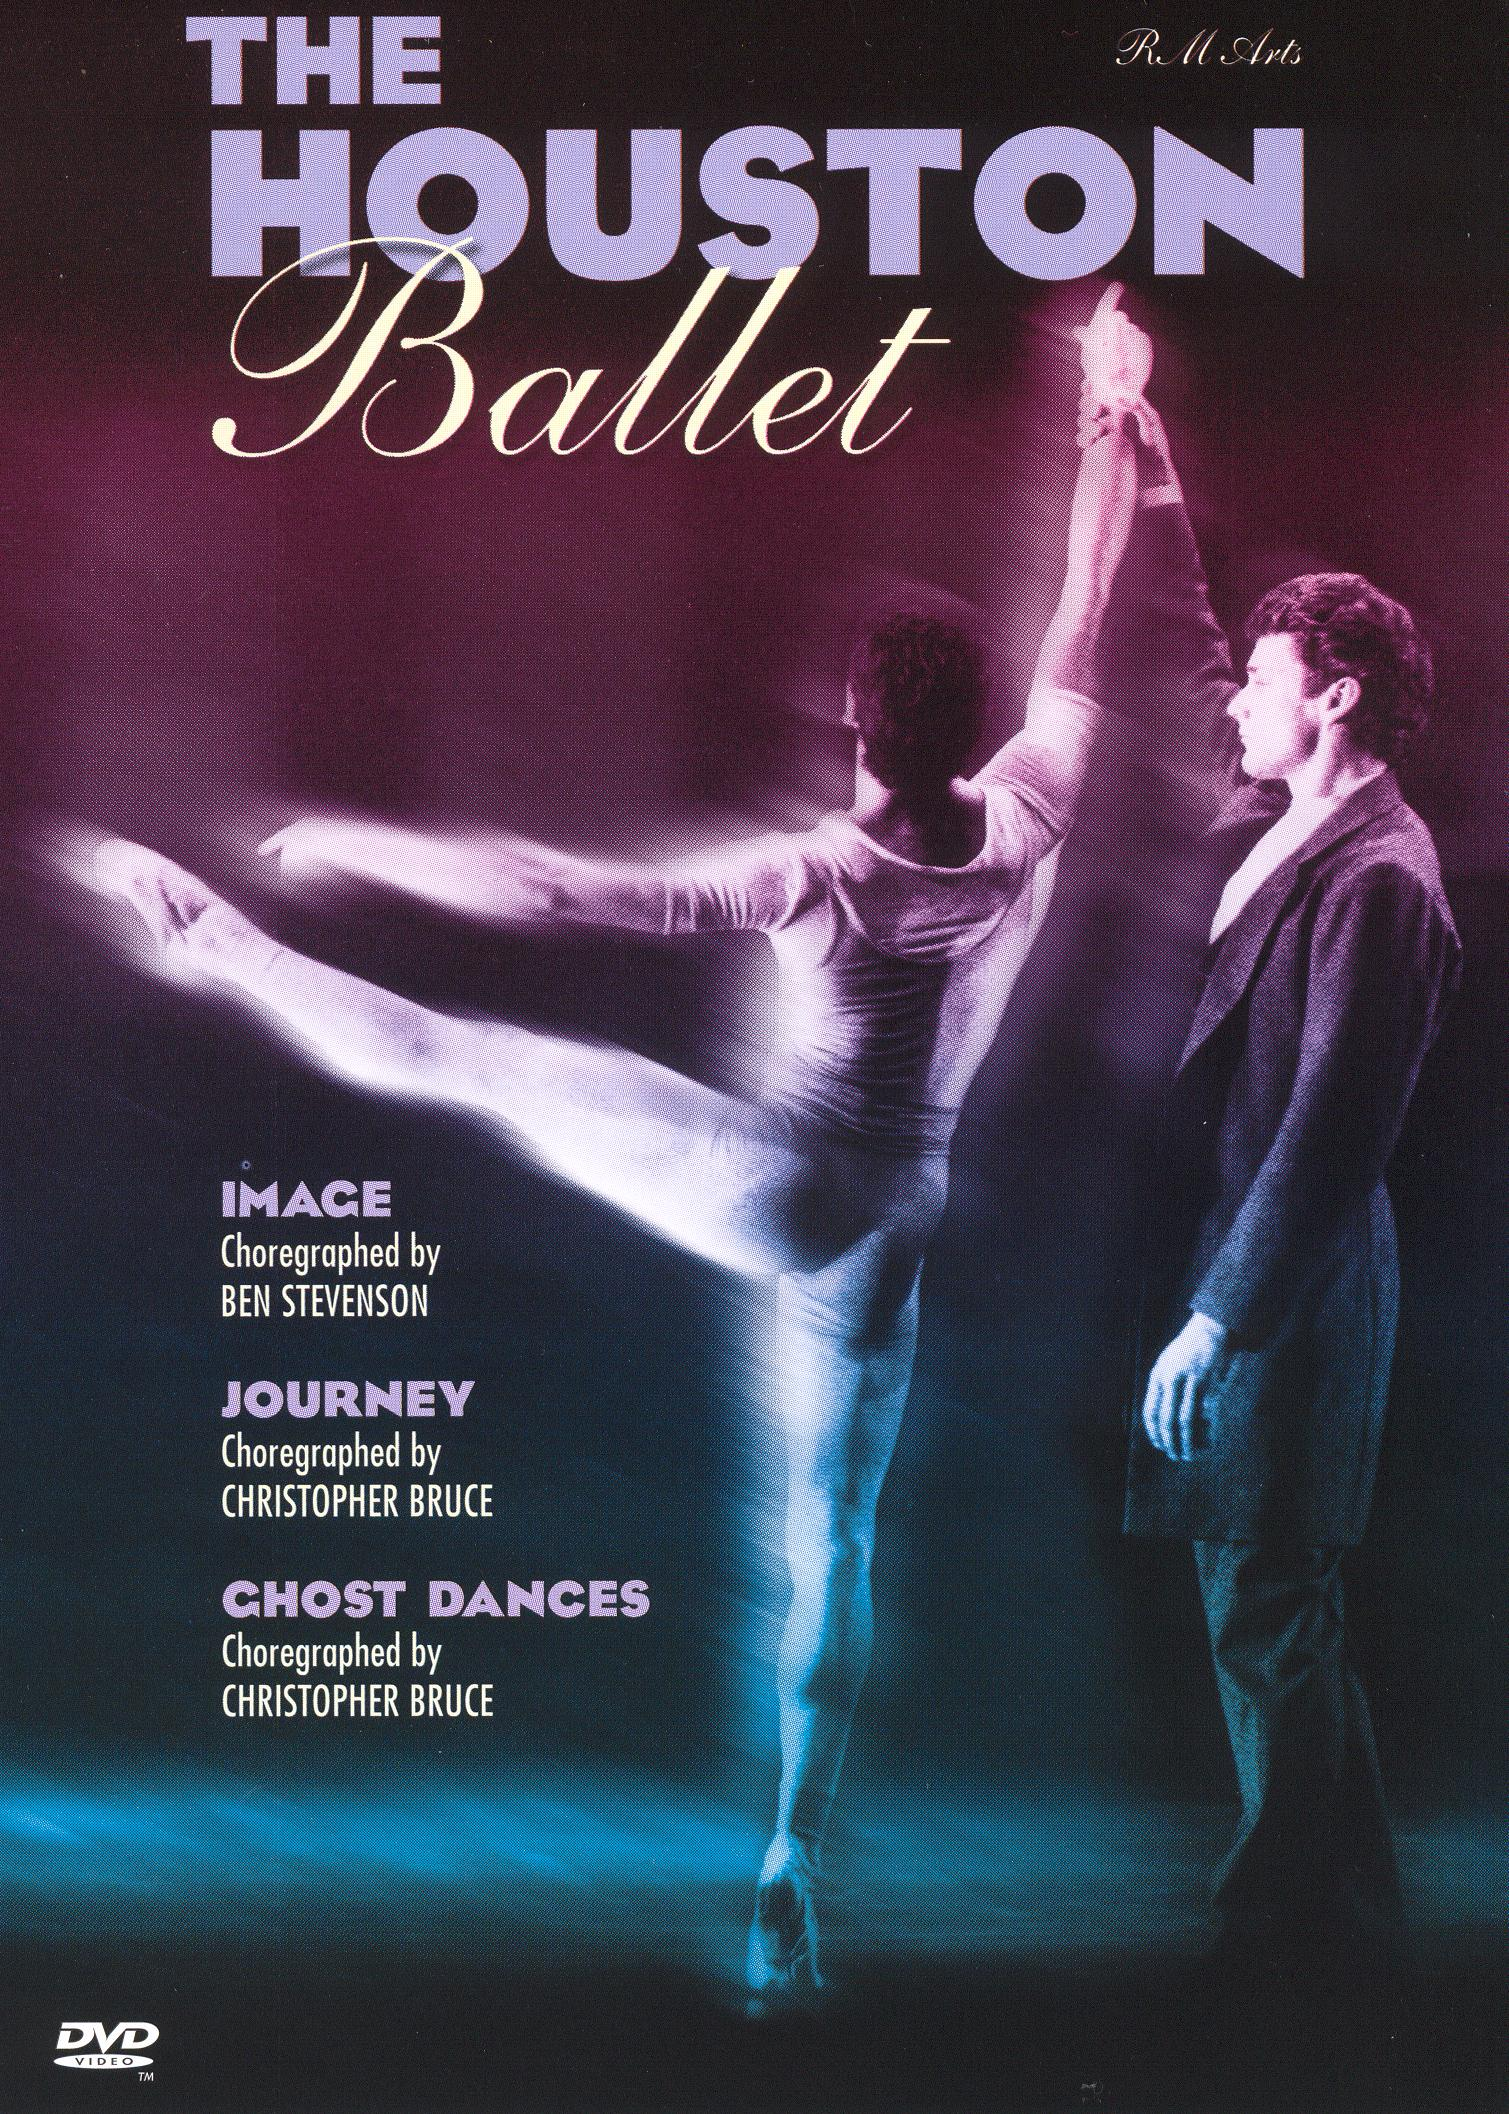 The Houston Ballet